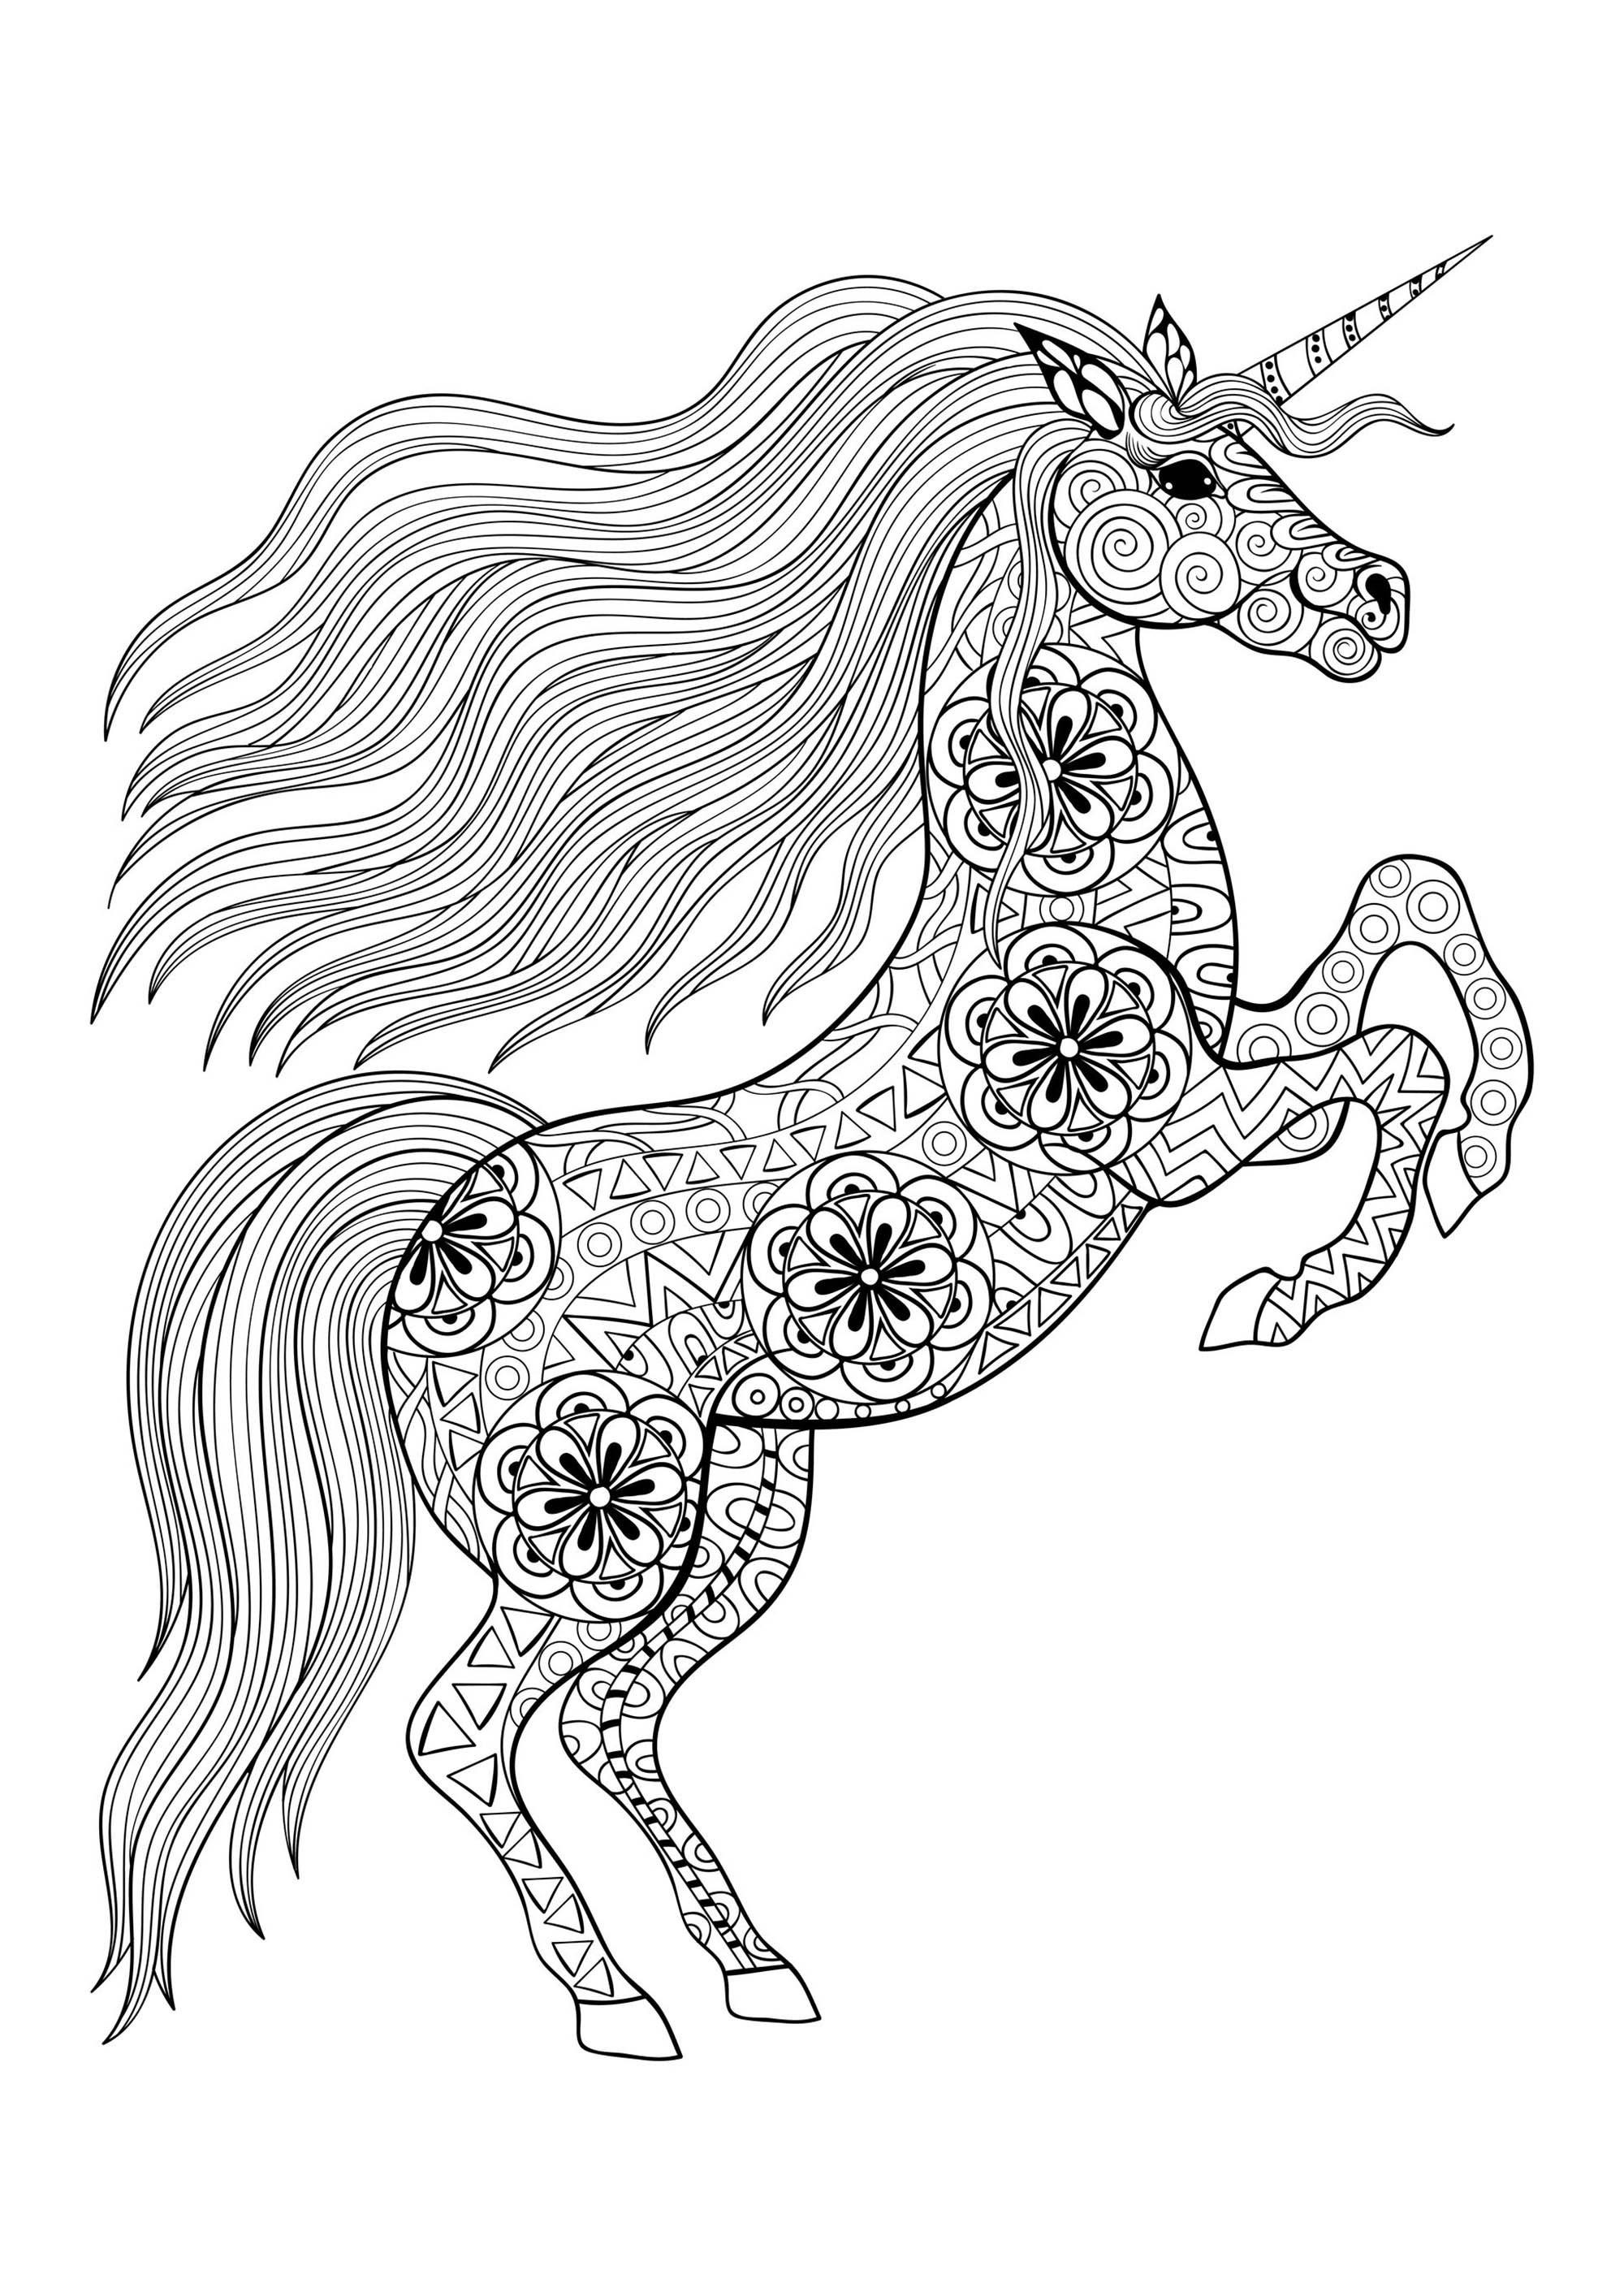 coloring pages for adults unicorn unicorn coloring pages for adults best coloring pages adults unicorn for pages coloring